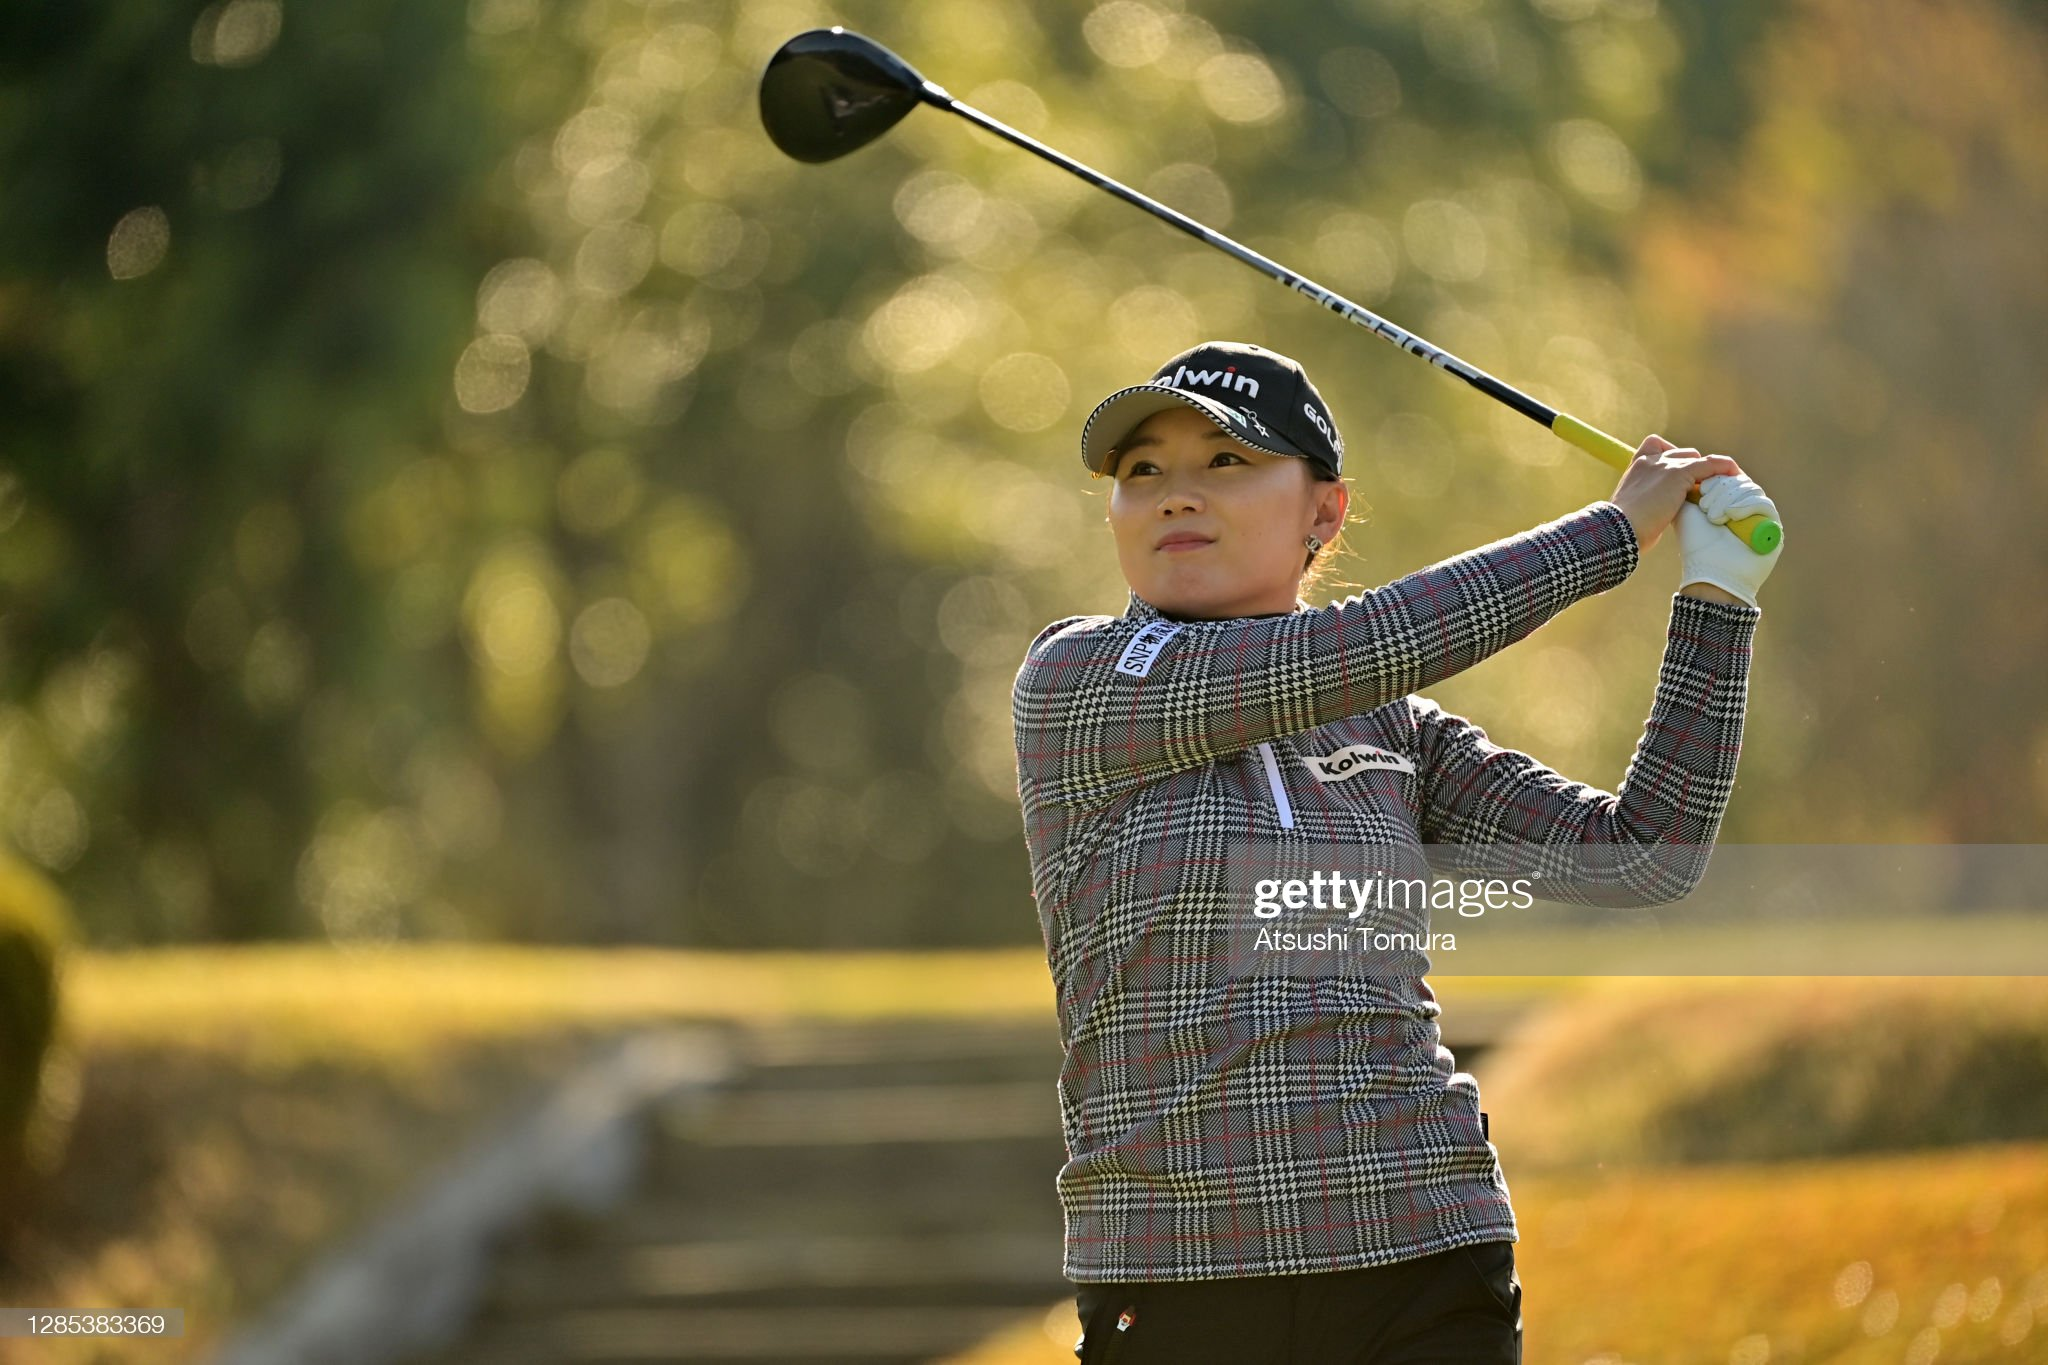 https://media.gettyimages.com/photos/nari-lee-of-south-korea-hits-her-tee-shot-on-the-3rd-hole-during-the-picture-id1285383369?s=2048x2048